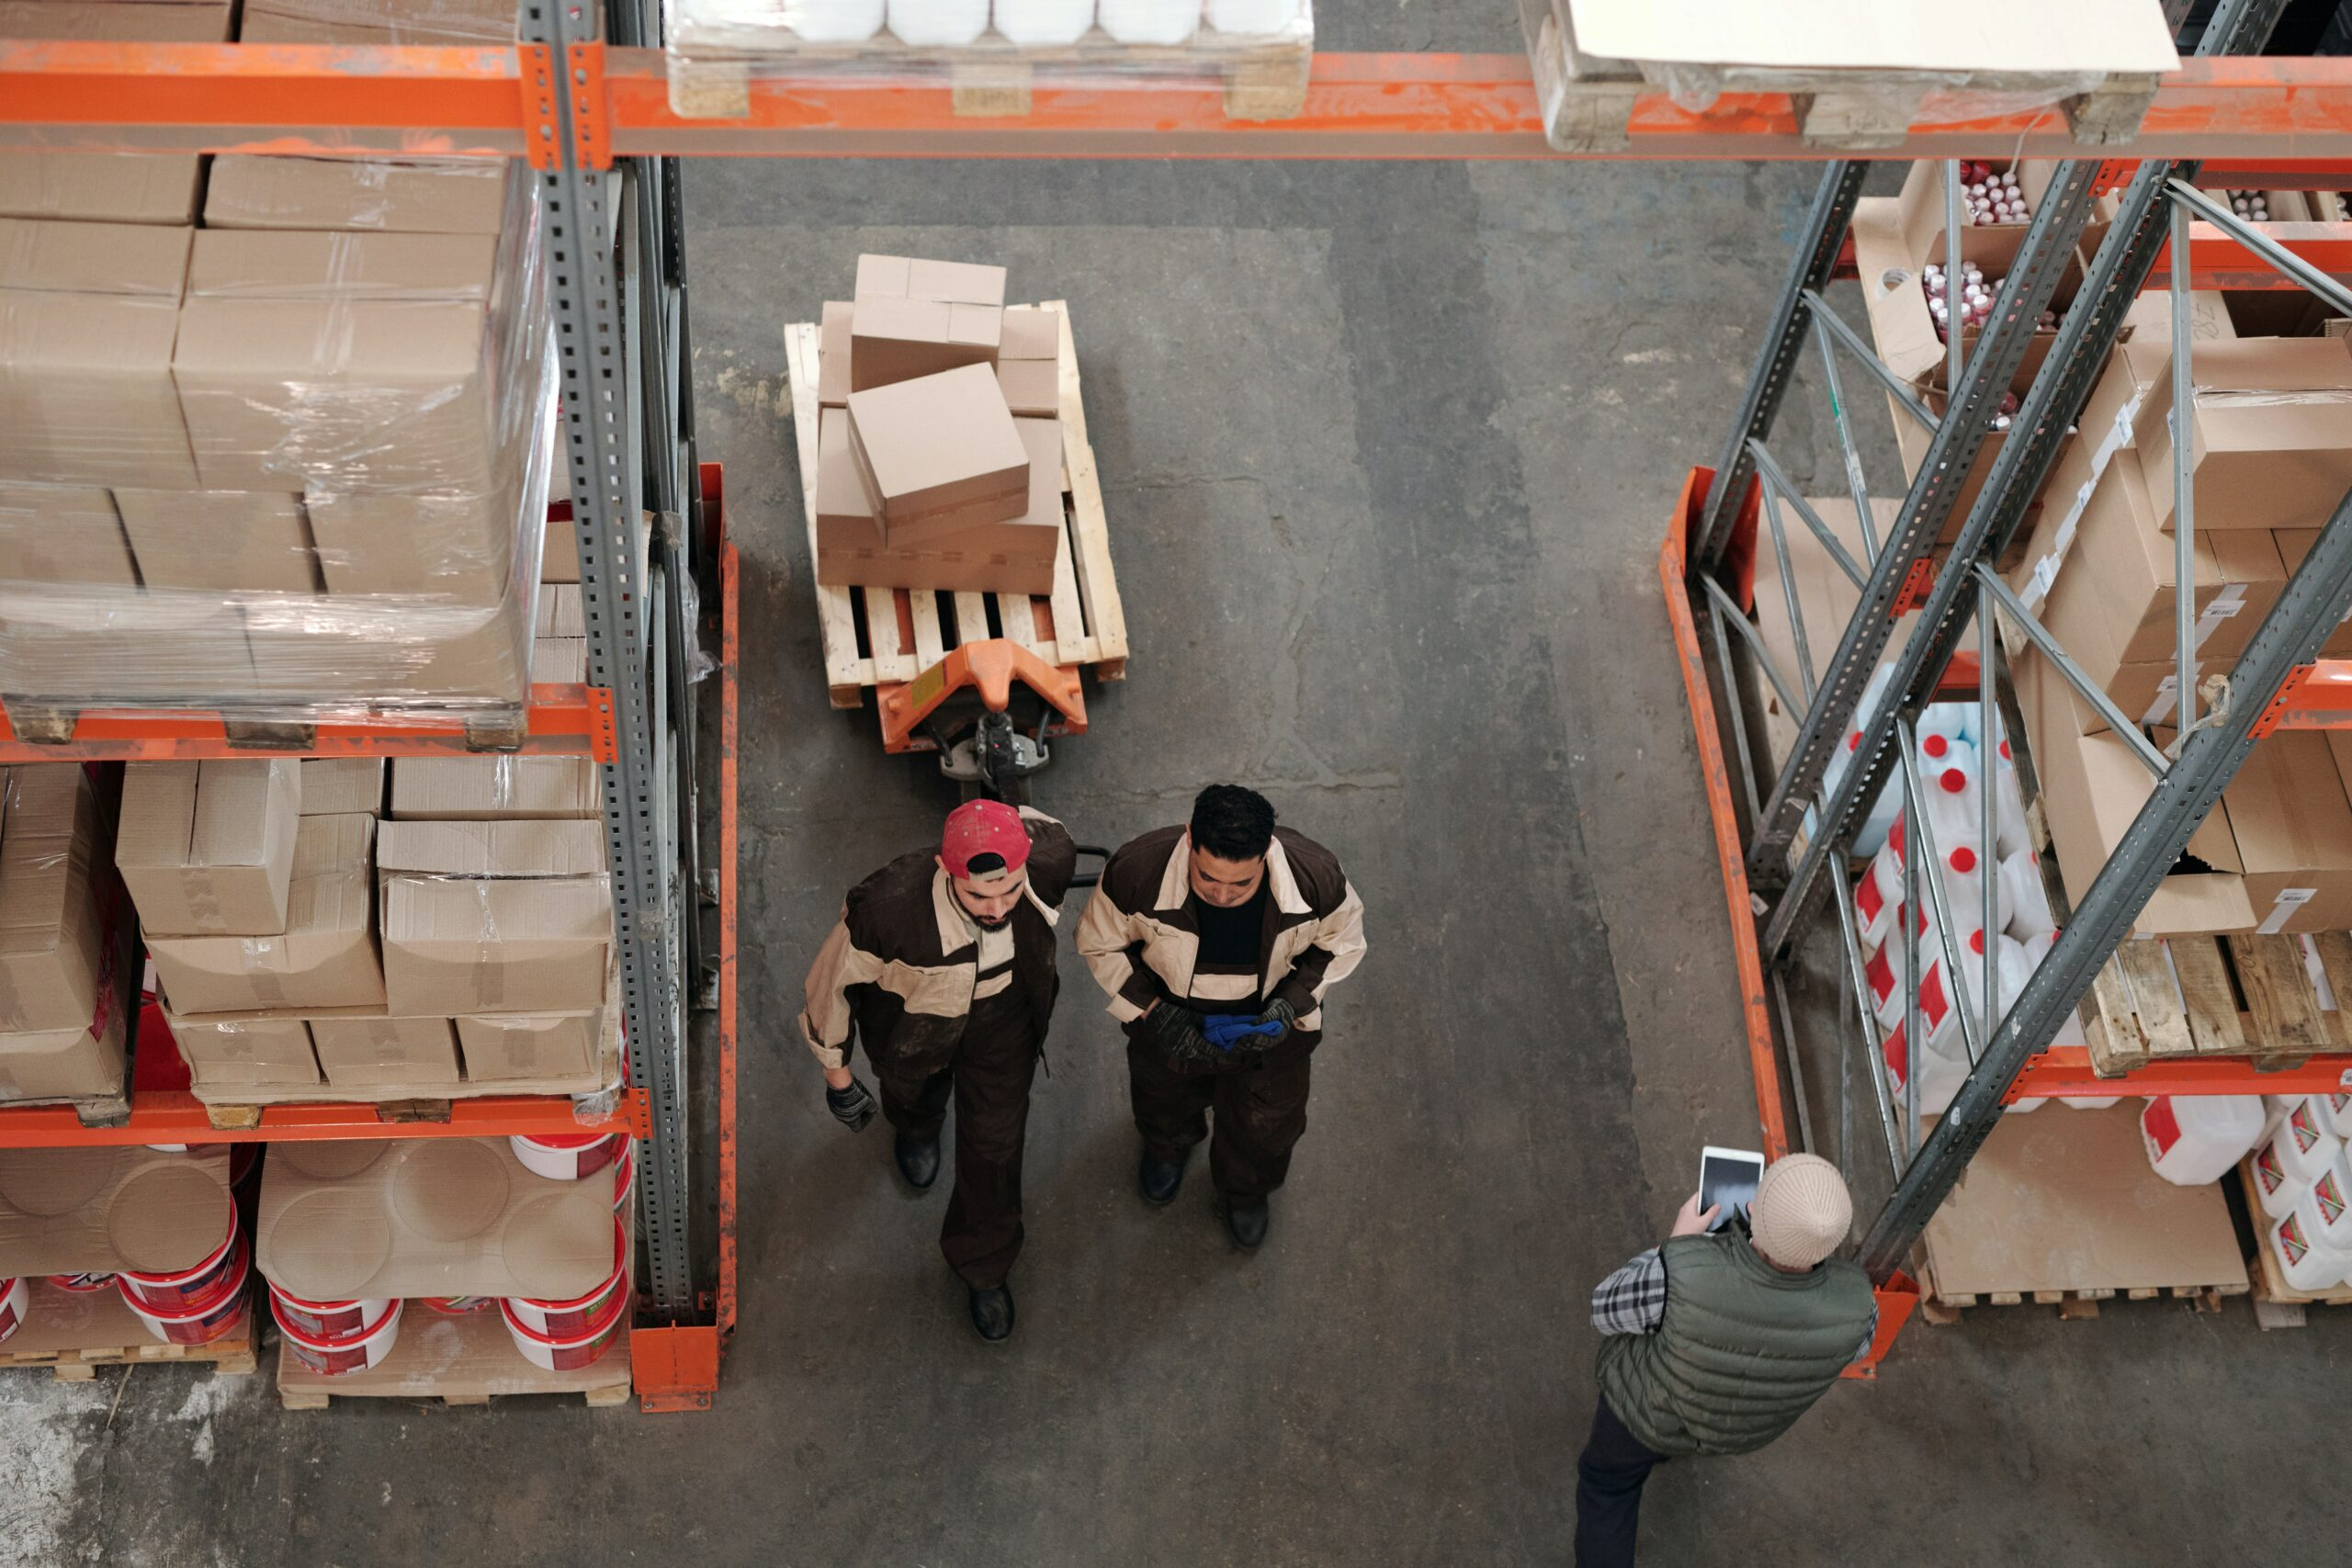 People working in a warehouse for exporting